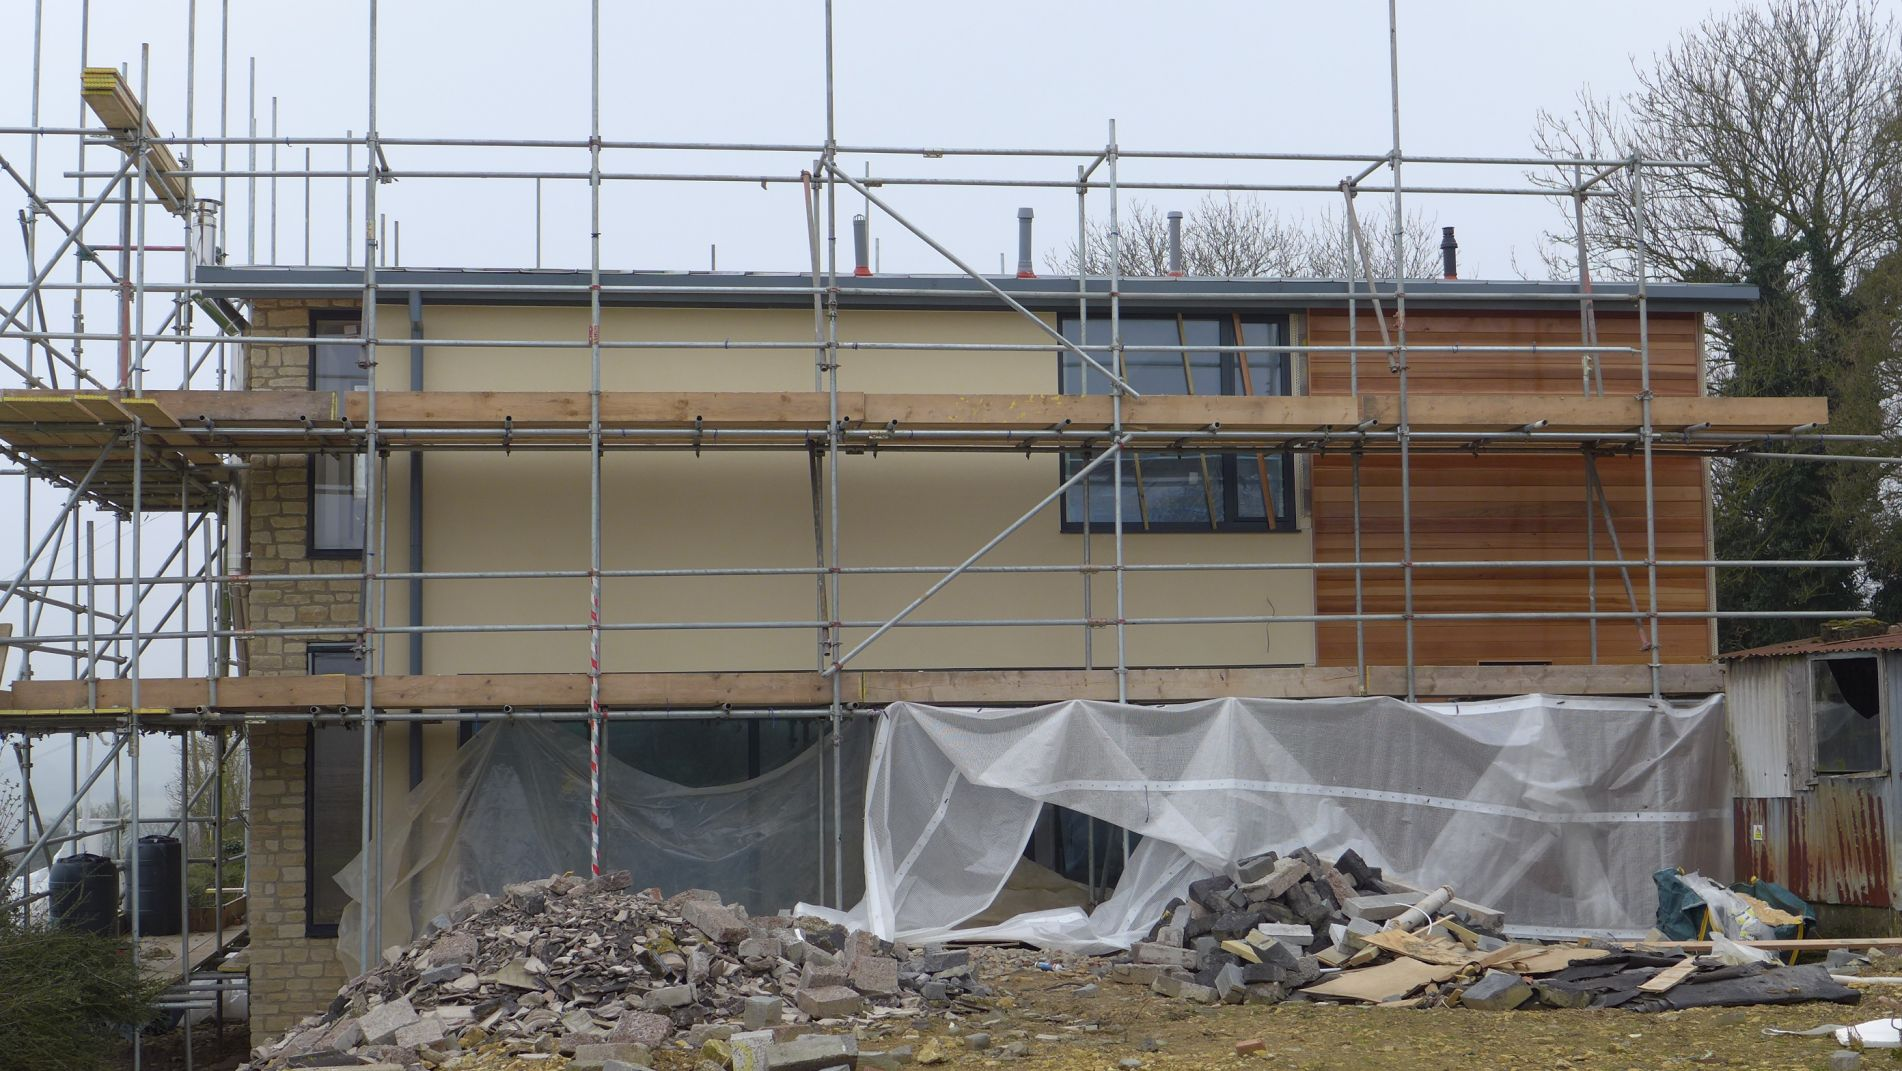 new build with timber cladding and rough stone